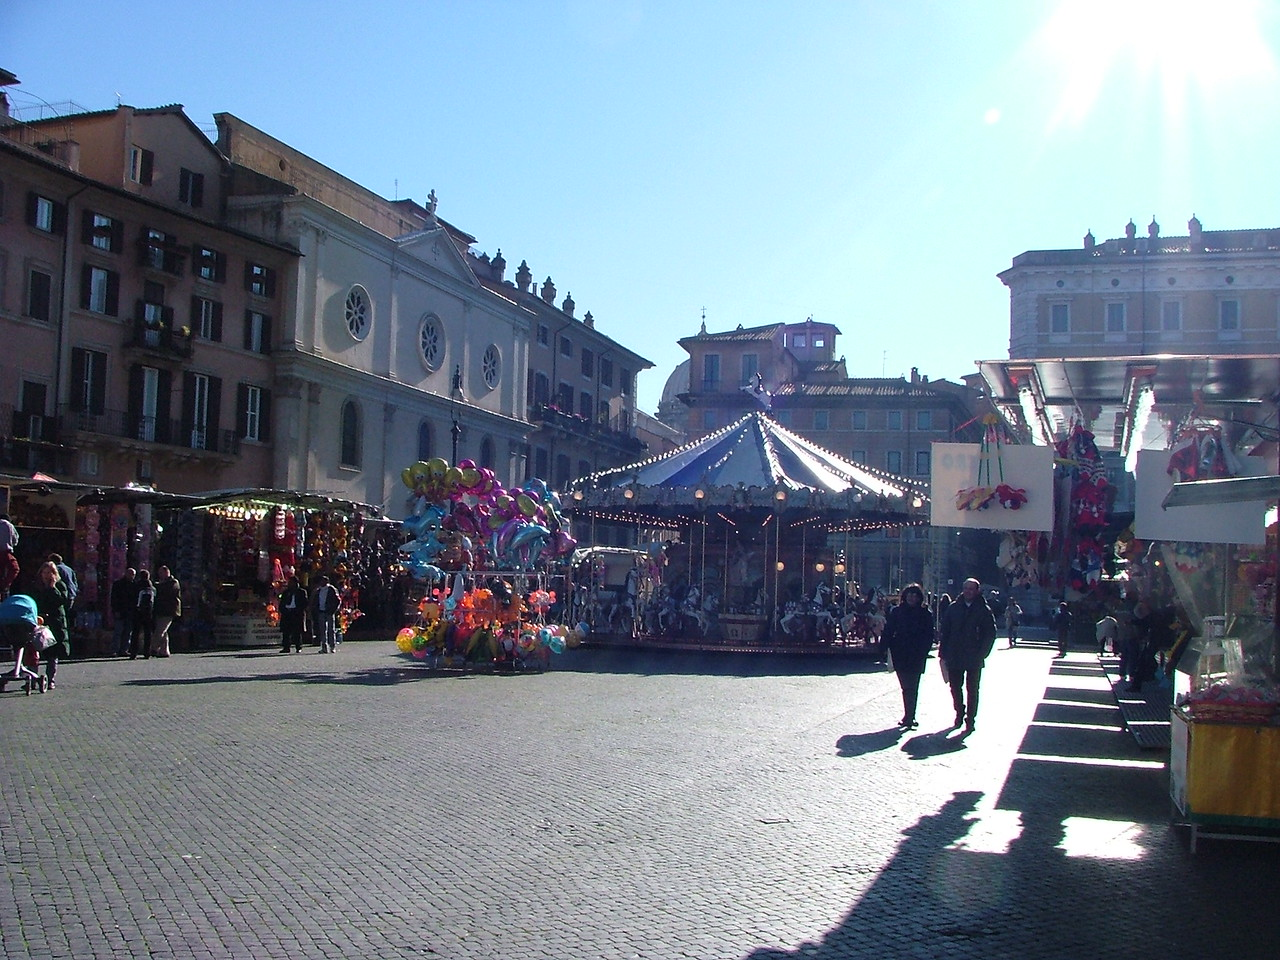 At Piazza Navona.  A Christmas bazaar.